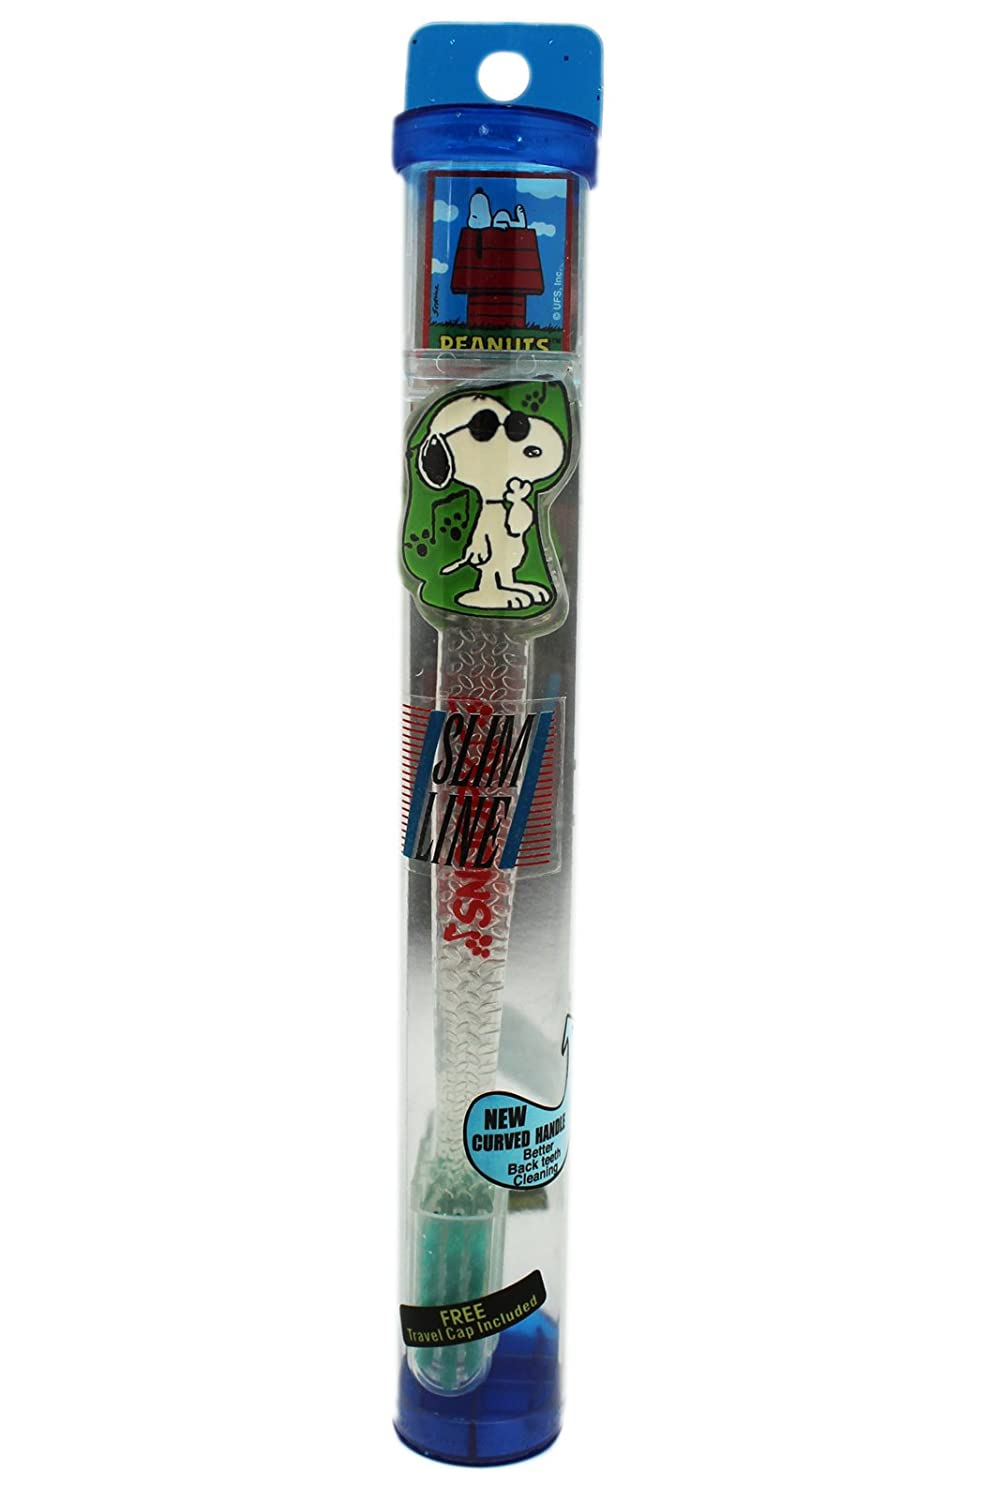 Green Joe Cool Snoopy Peanuts Toothbrush